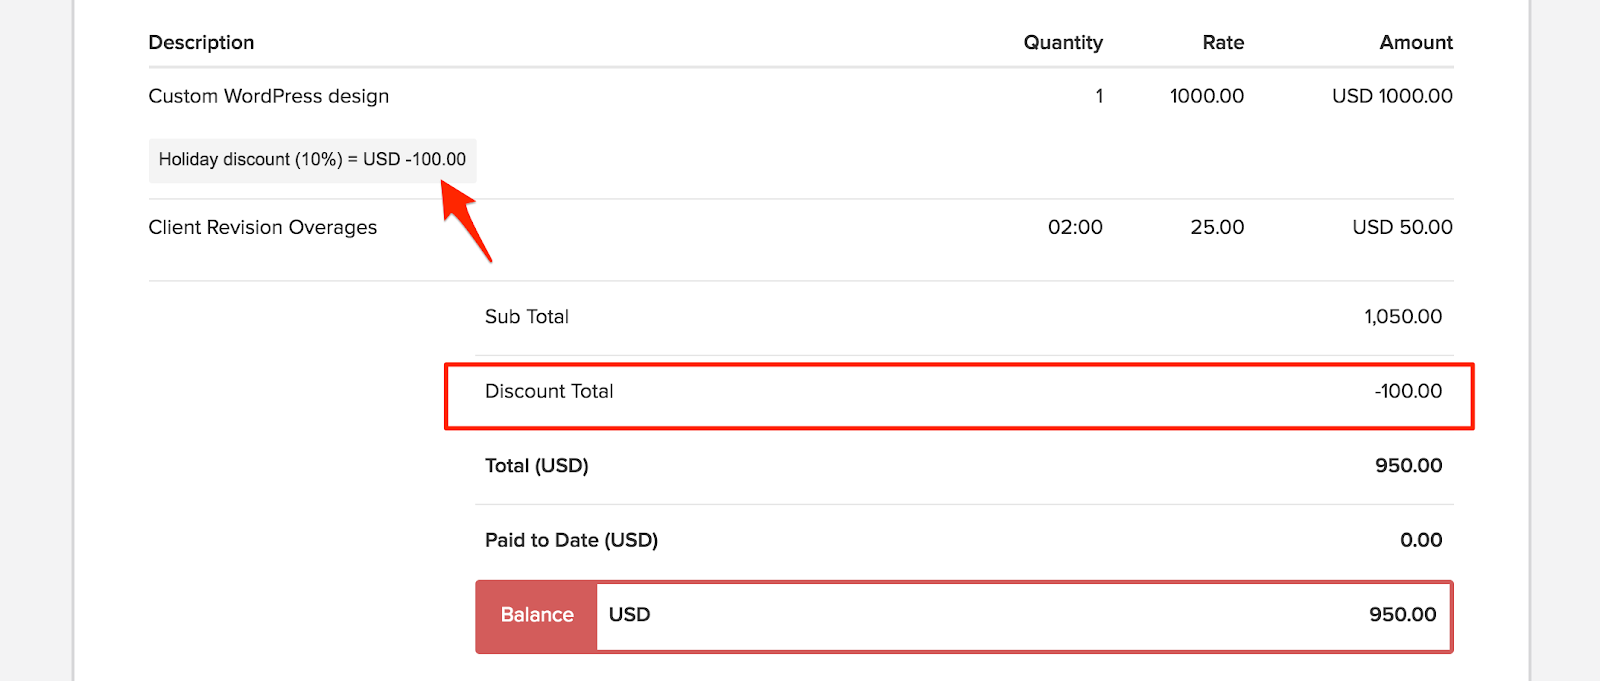 Why & How to Thank Customers on Invoices